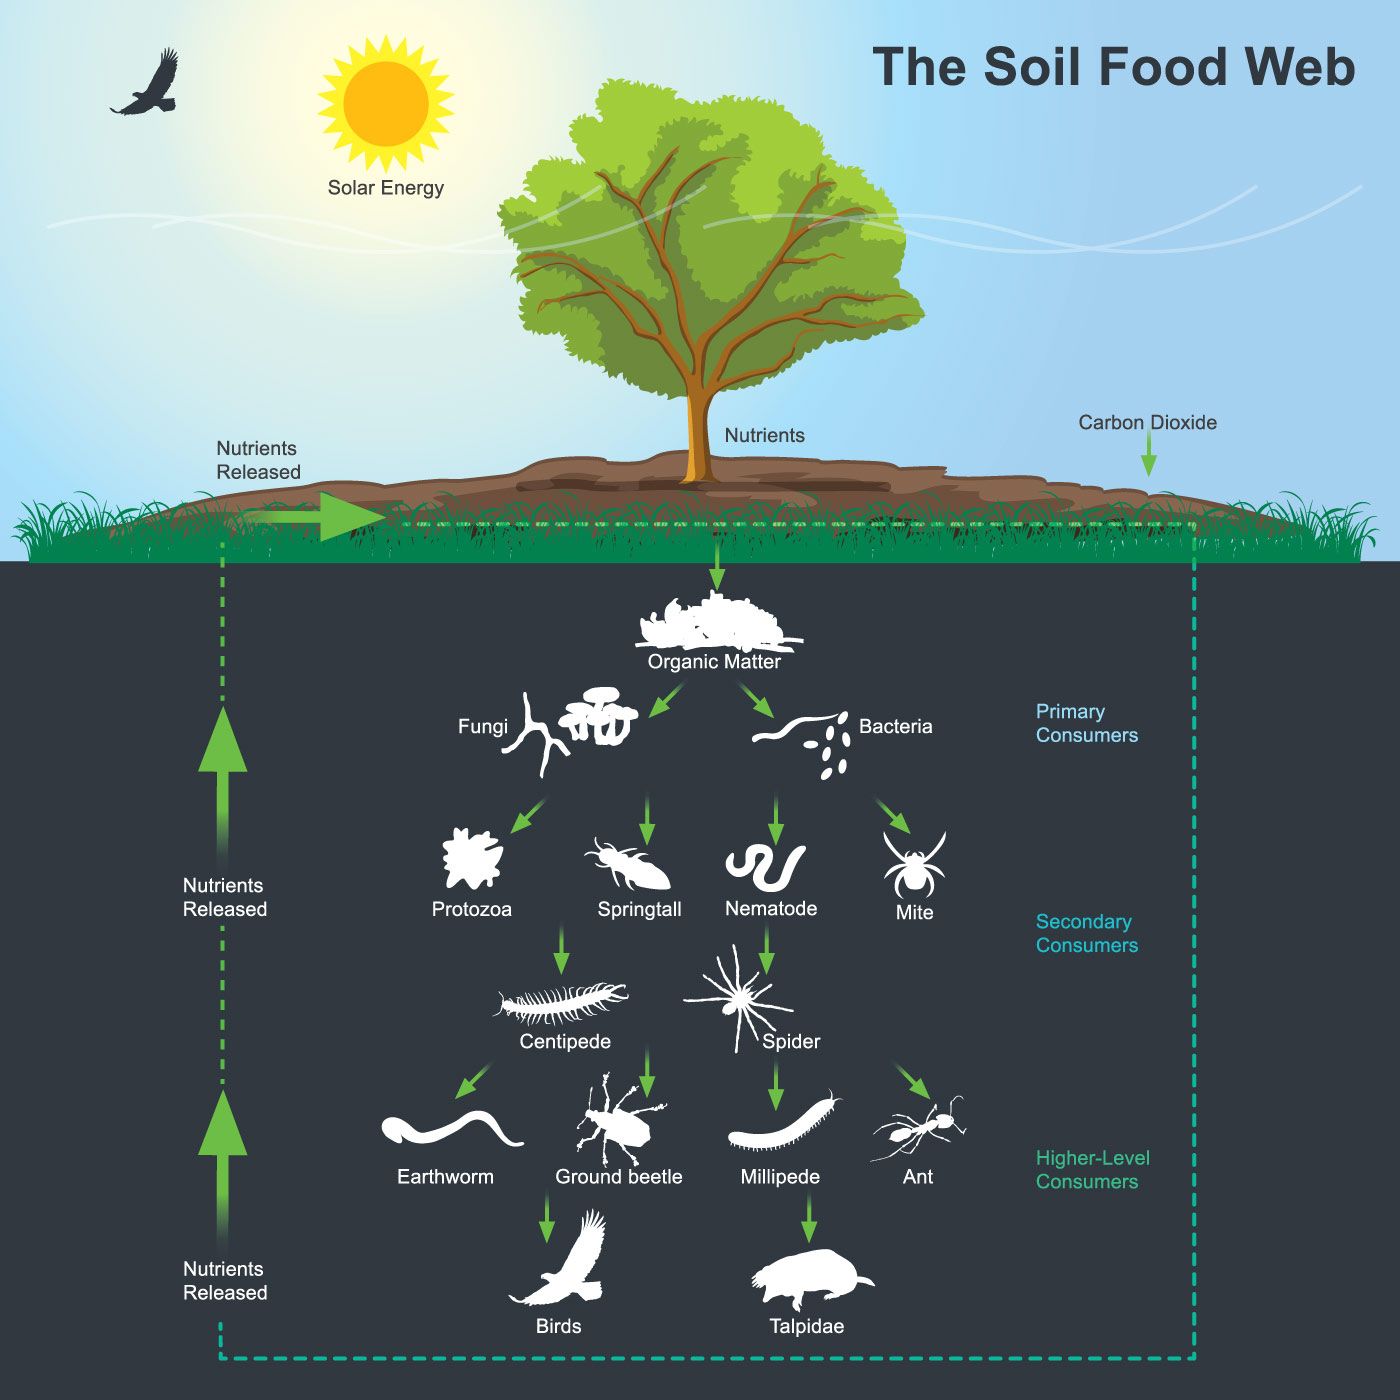 diagram of soil food web